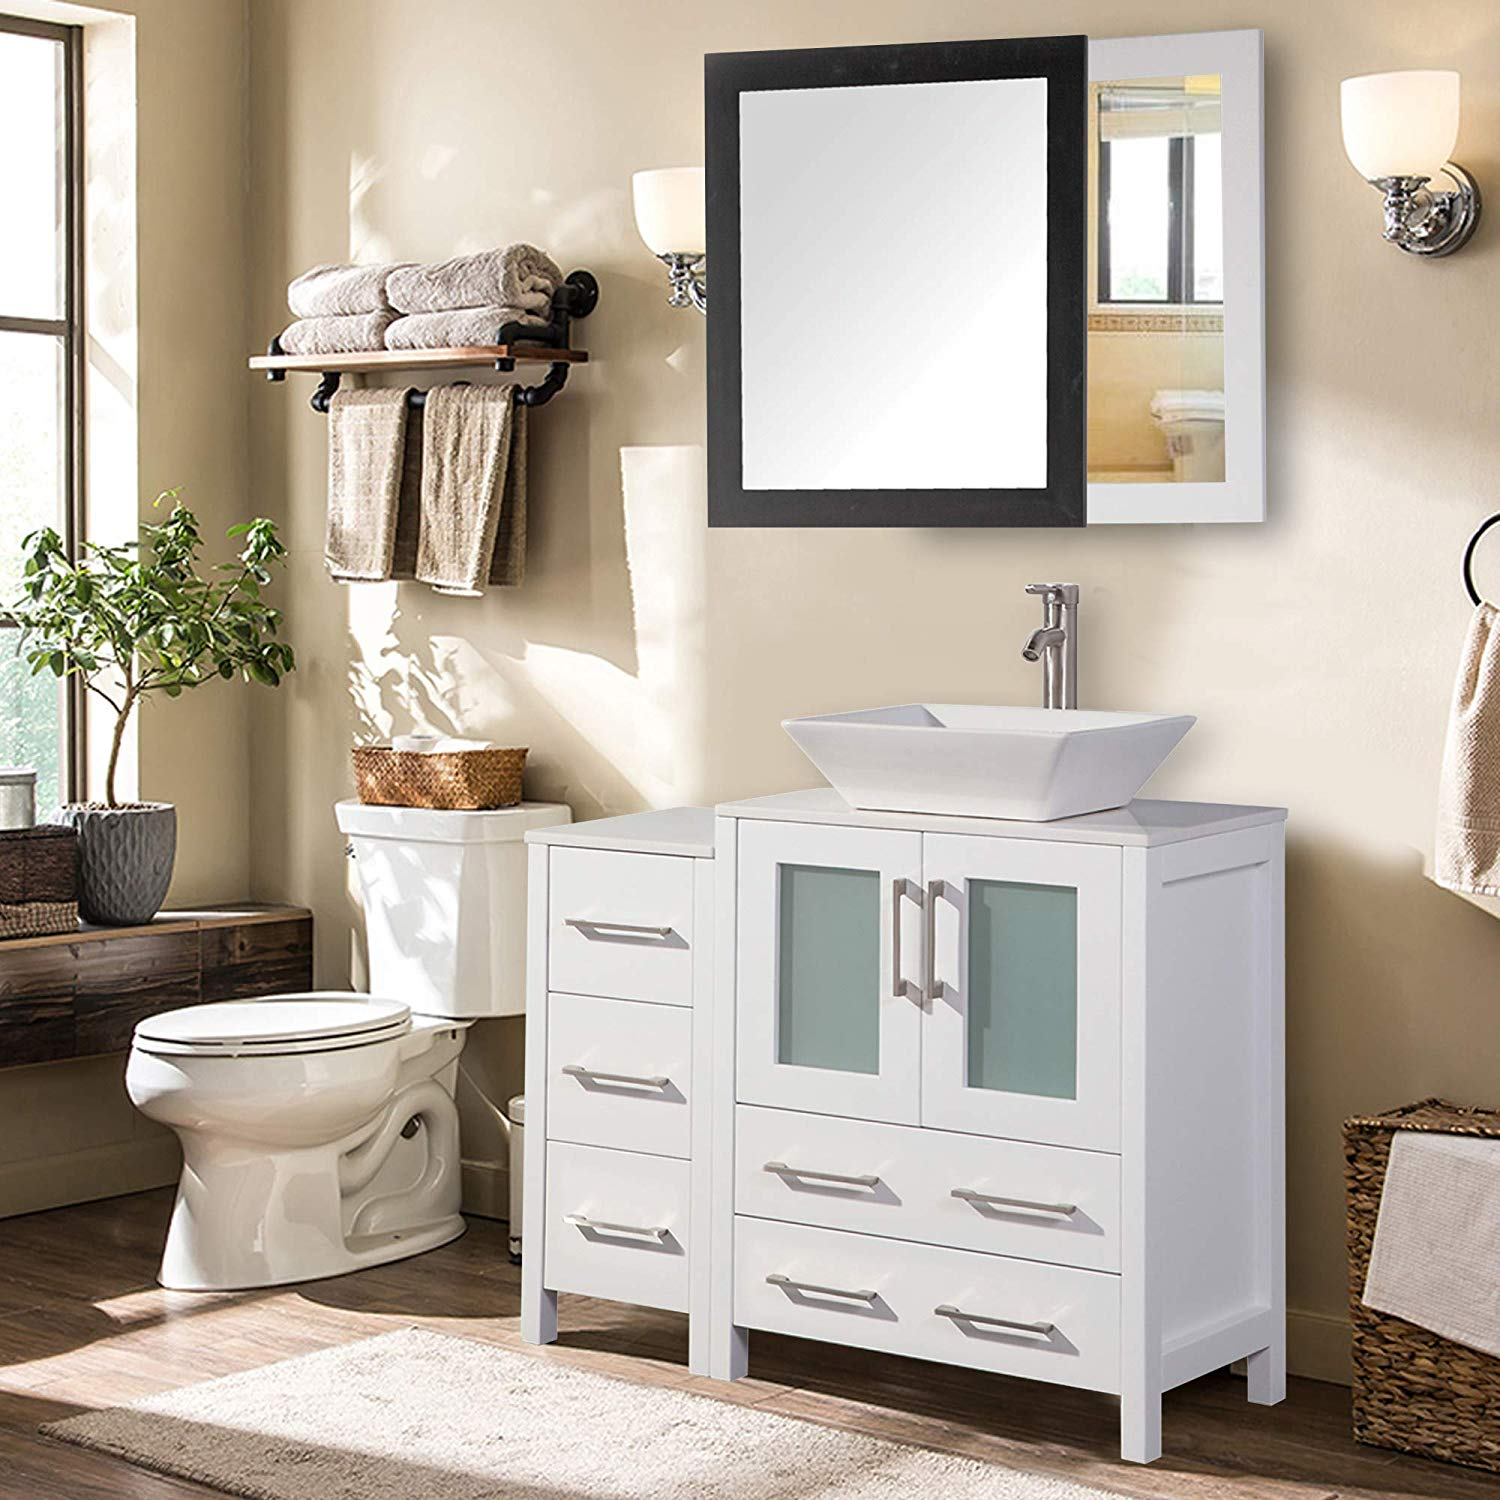 "vanity art 36"" single sink bathroom vanity combo set solid"